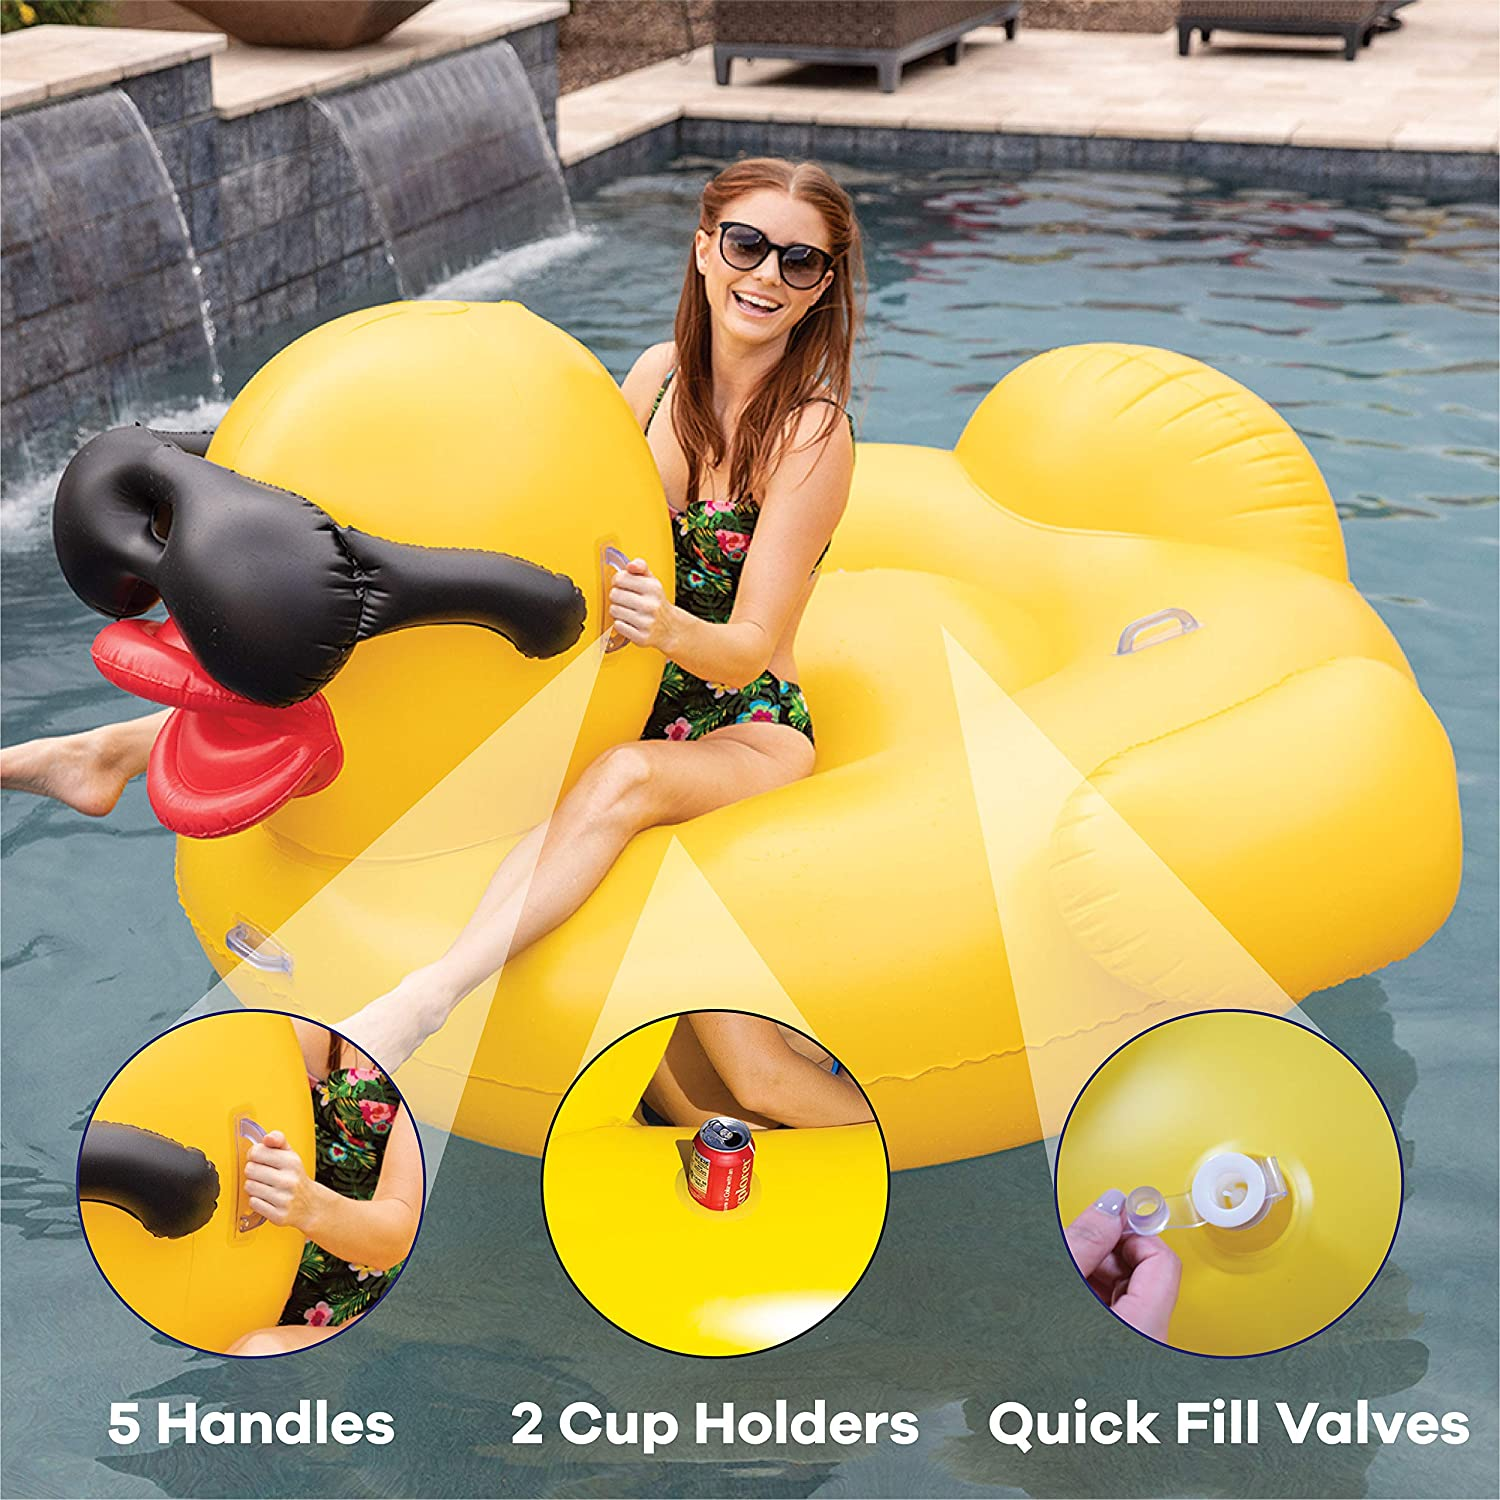 """GAME 5007 Giant Derby Duck with Pump Inflatable Pool Float, Quick-Fill Valves, Built-in Cup Holders, 300-Pound Capacity, 72"""" L x 66"""" W x 36"""", Yellow"""